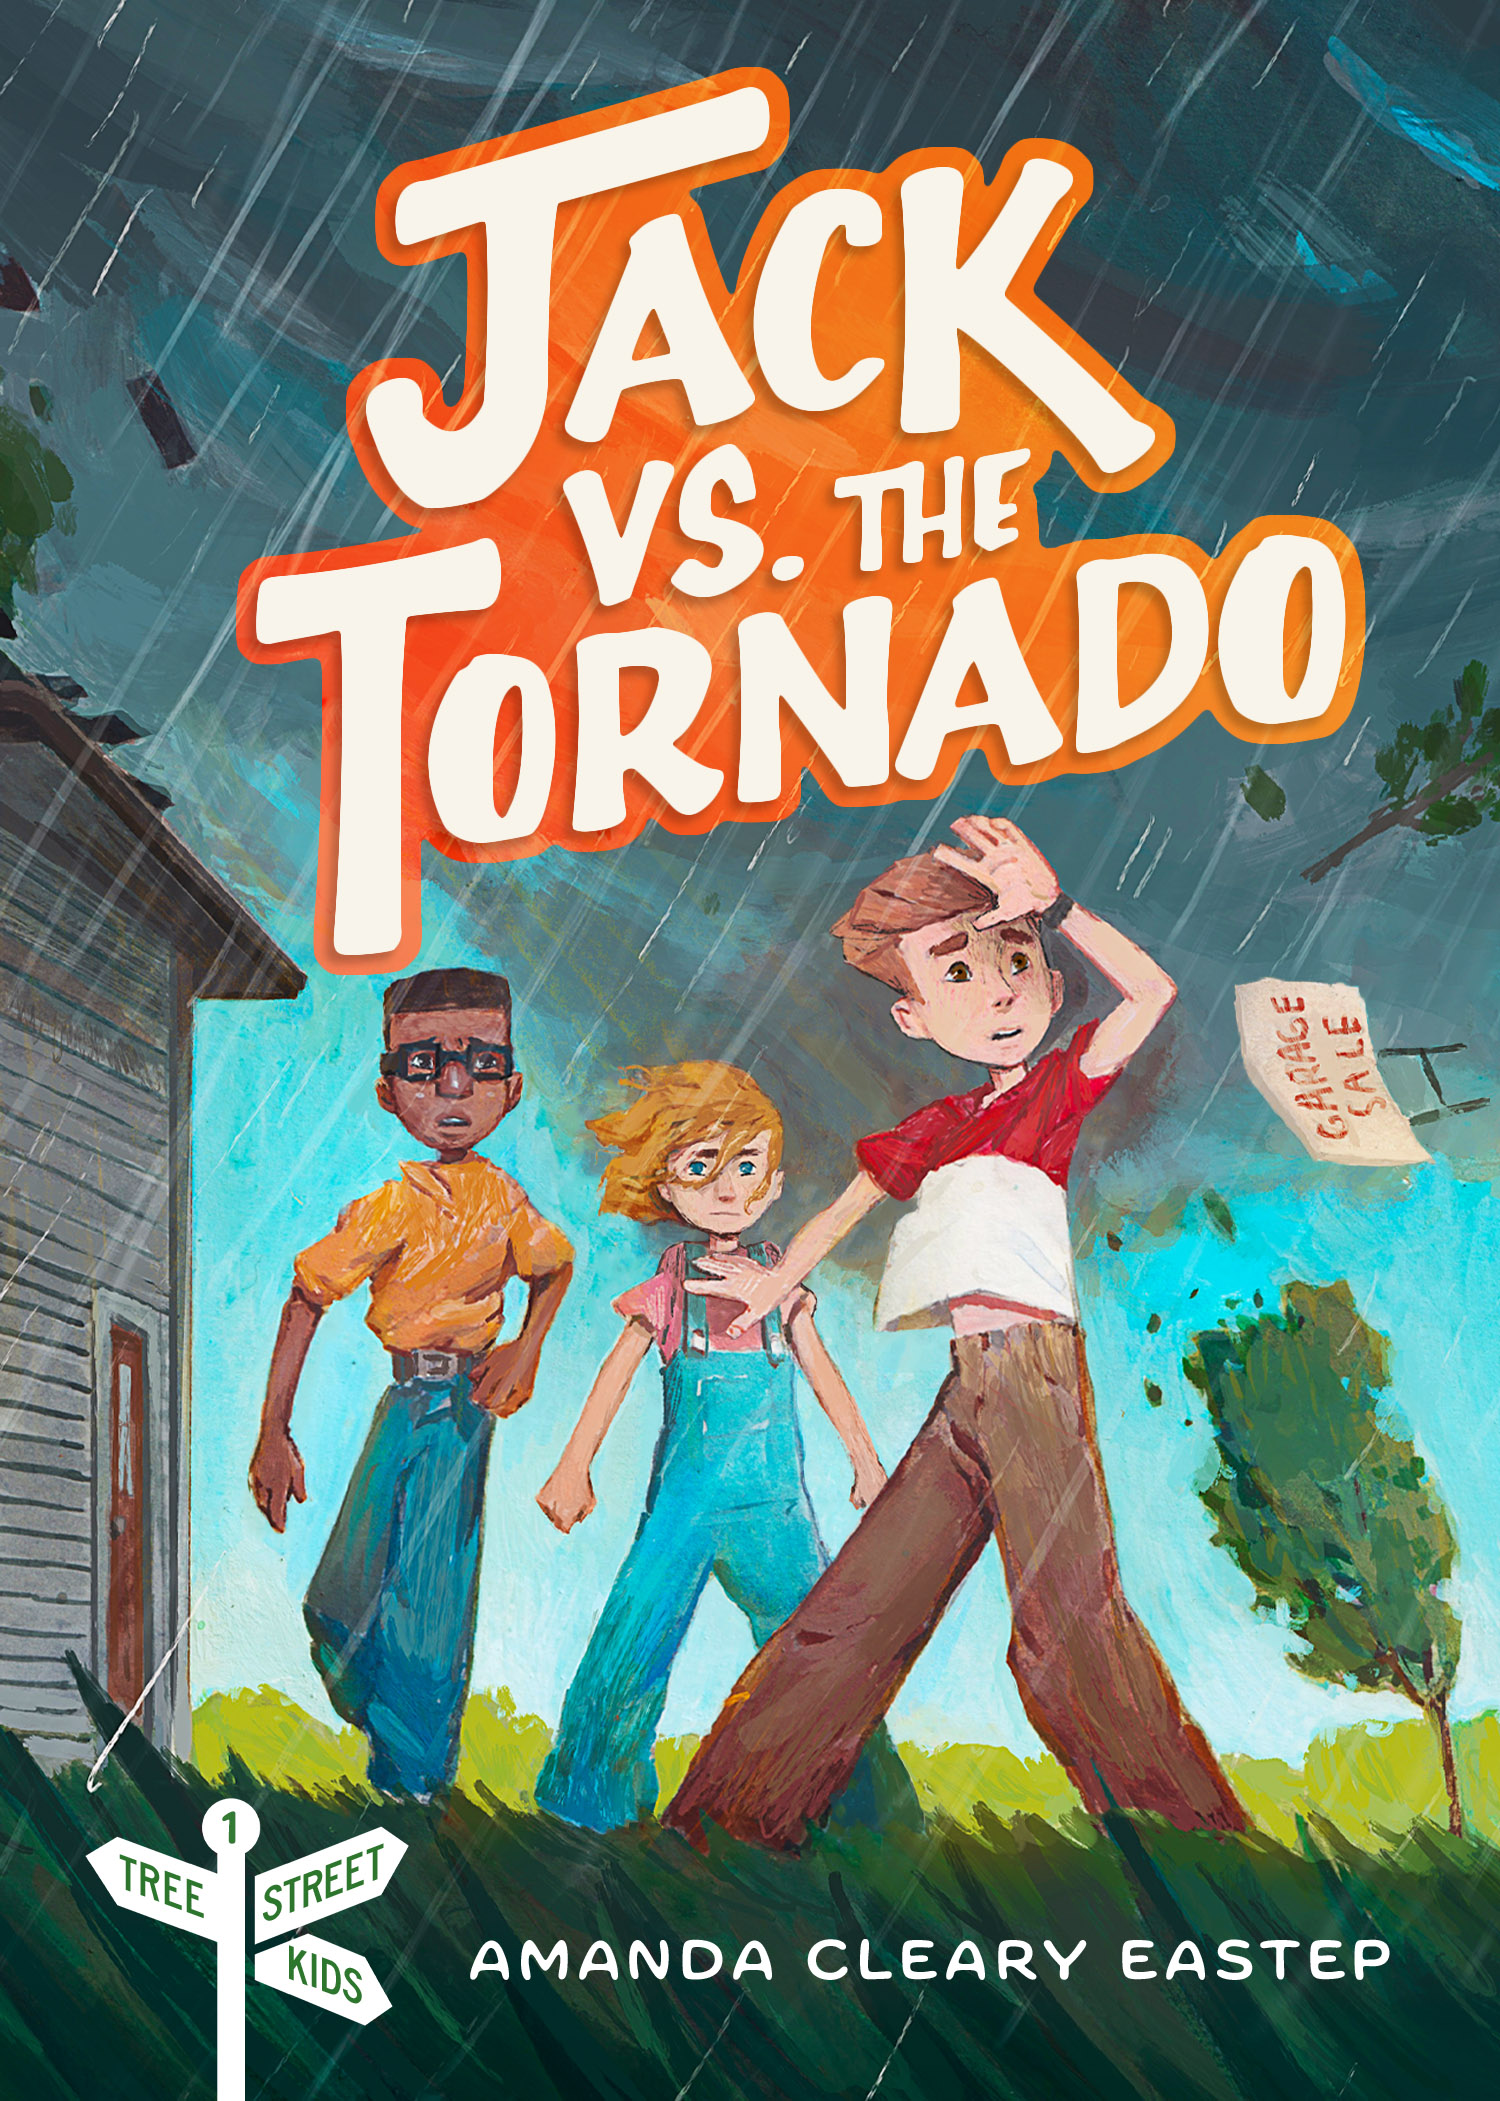 https://illinois.scbwi.org/wp-admin/admin-ajax.php?action=cfdb-file&s=1616006202.6120&form=2020+Virtual+Book+Launch&field=newest-book-cover